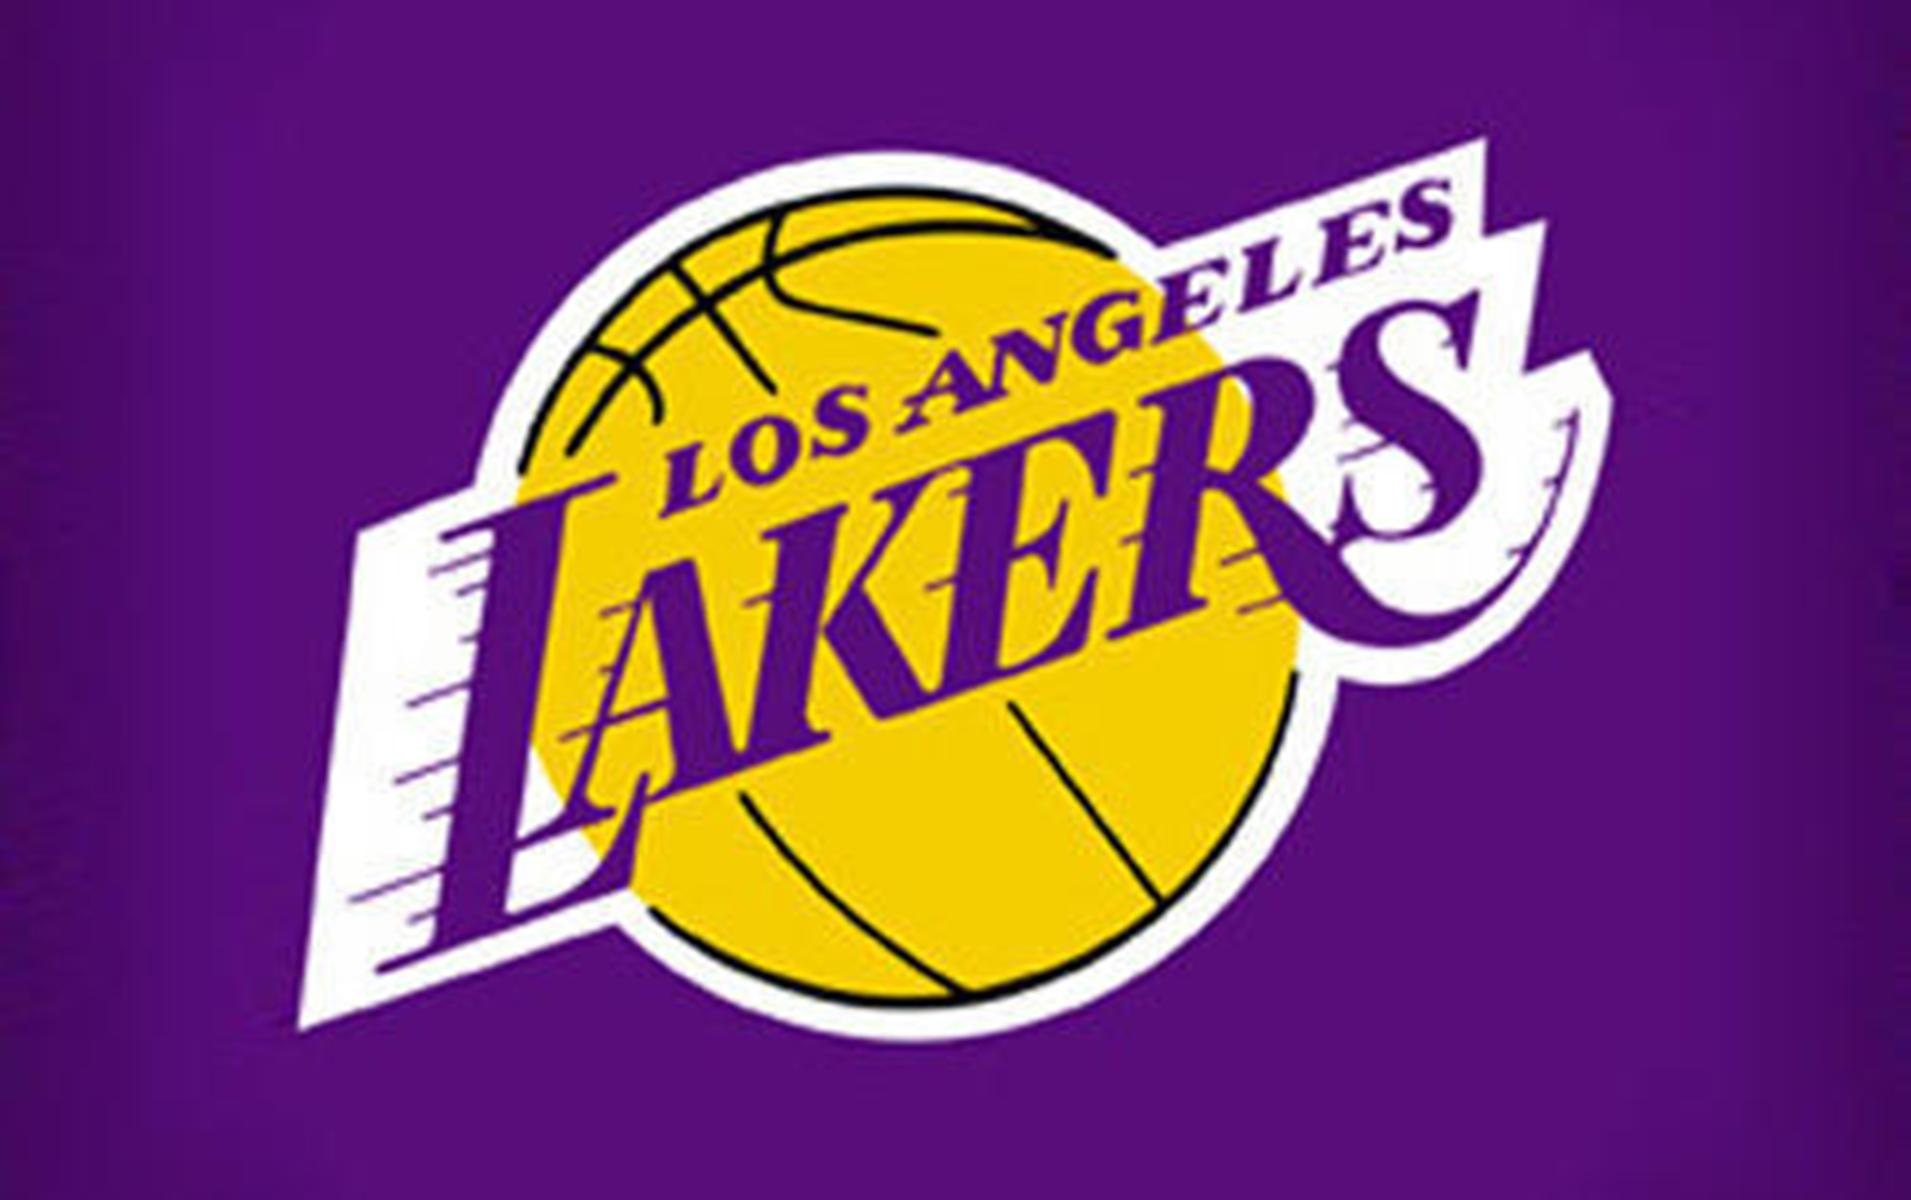 Los Angeles Lakers Wallpaper Basketball Sport Wallpapers HD